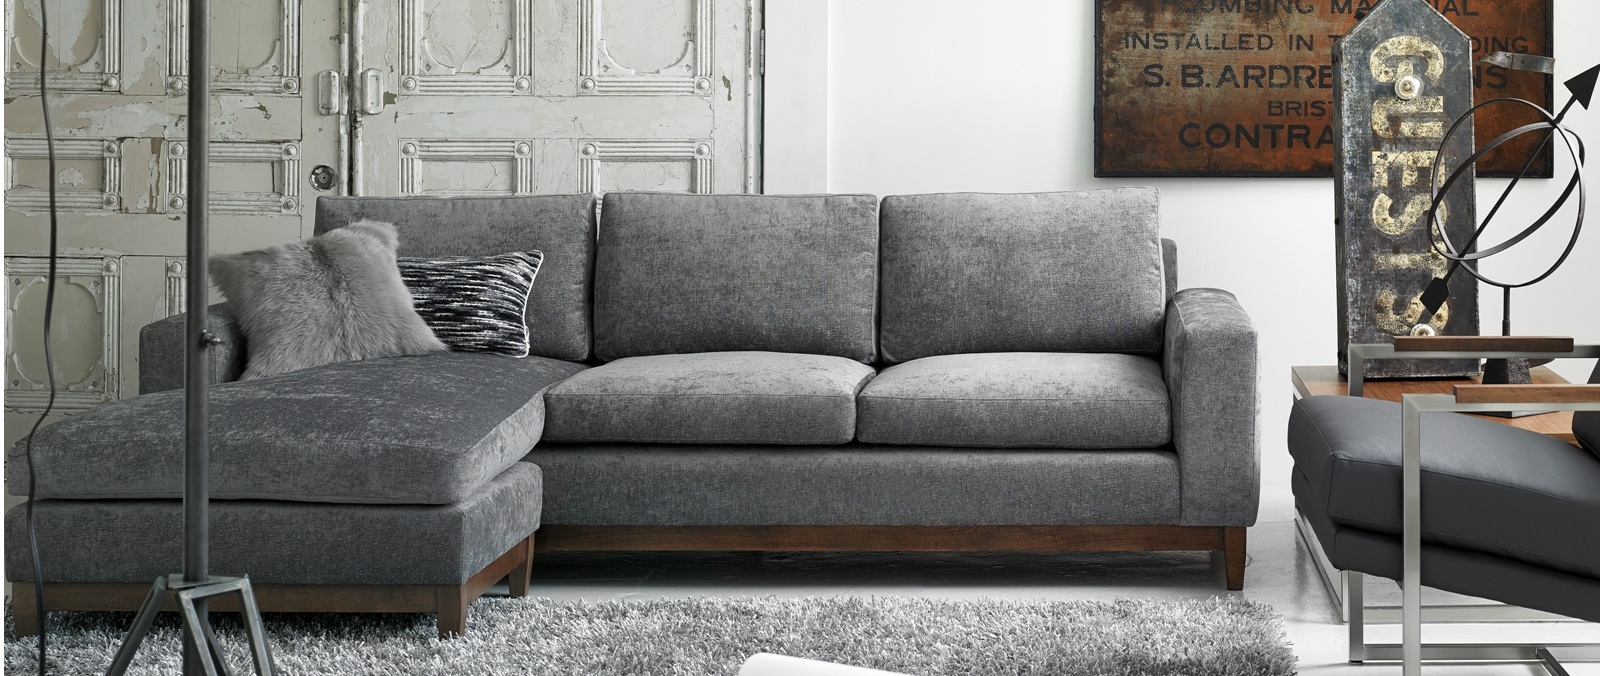 best contemporary sectional sofas wooden block sofa legs modern furniture store montreal and ottawa | mikazahome